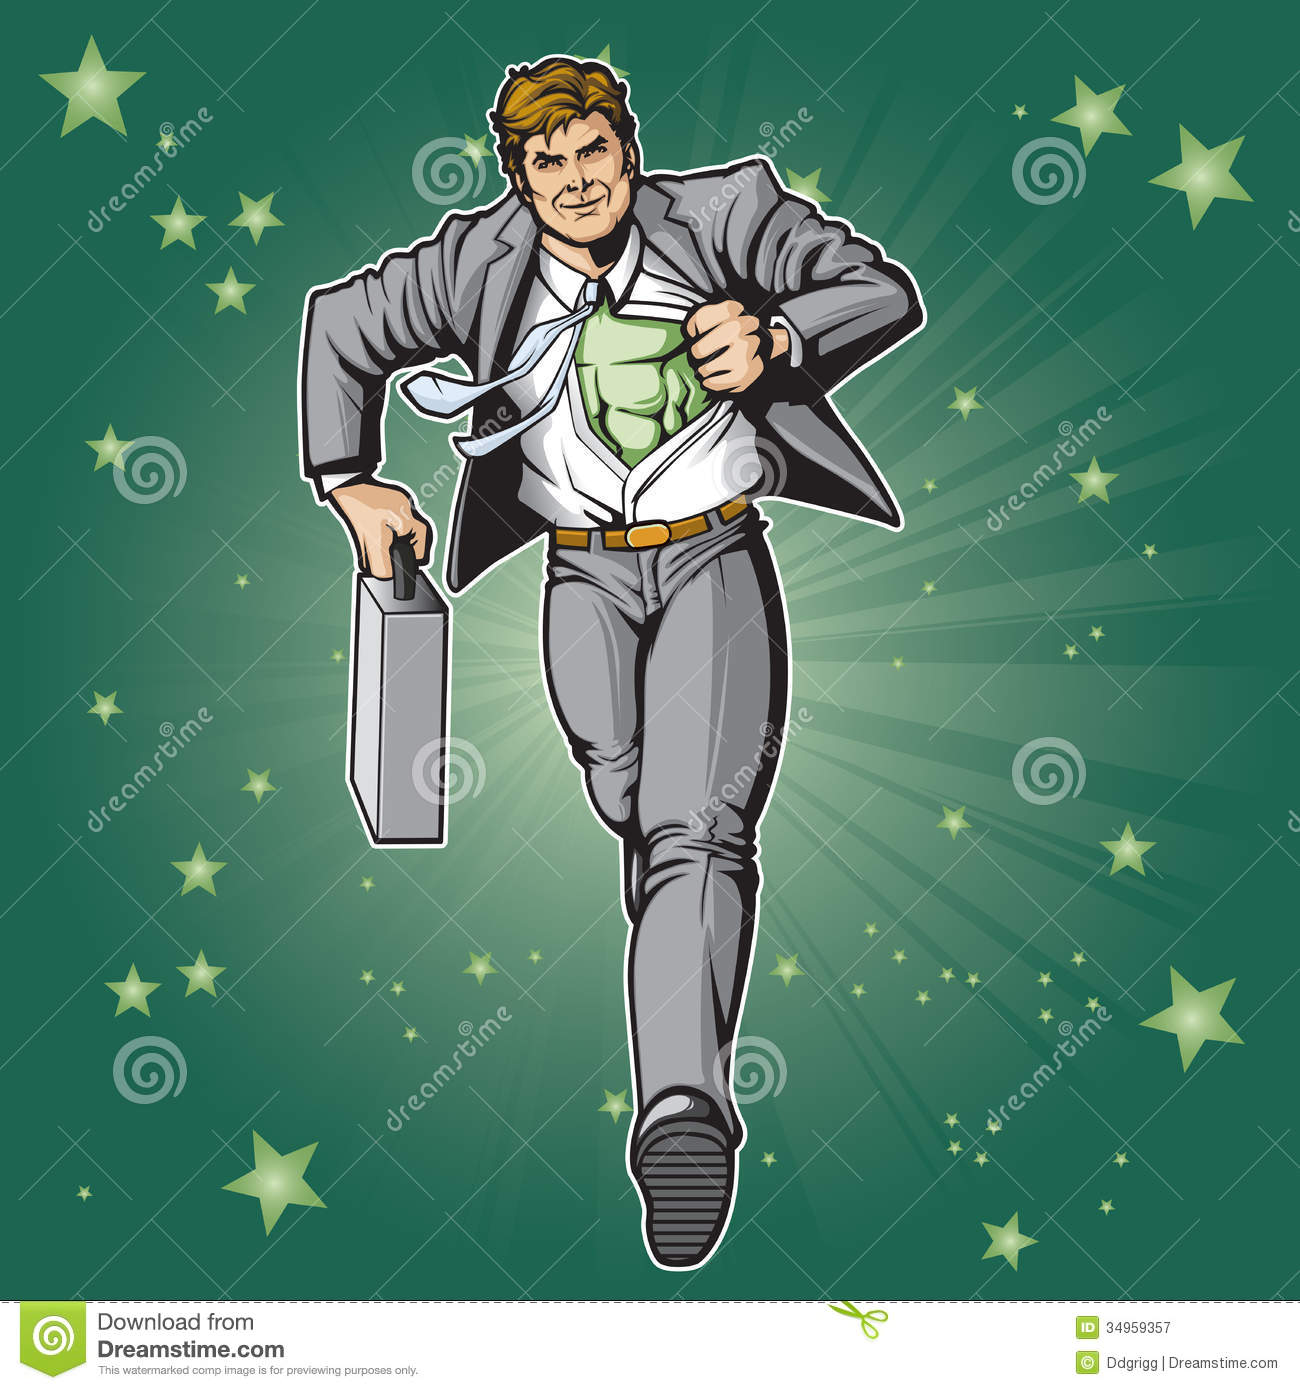 Generic businessman superhero figure changing. Layered & easy to edit ... Superhero Flying Vector